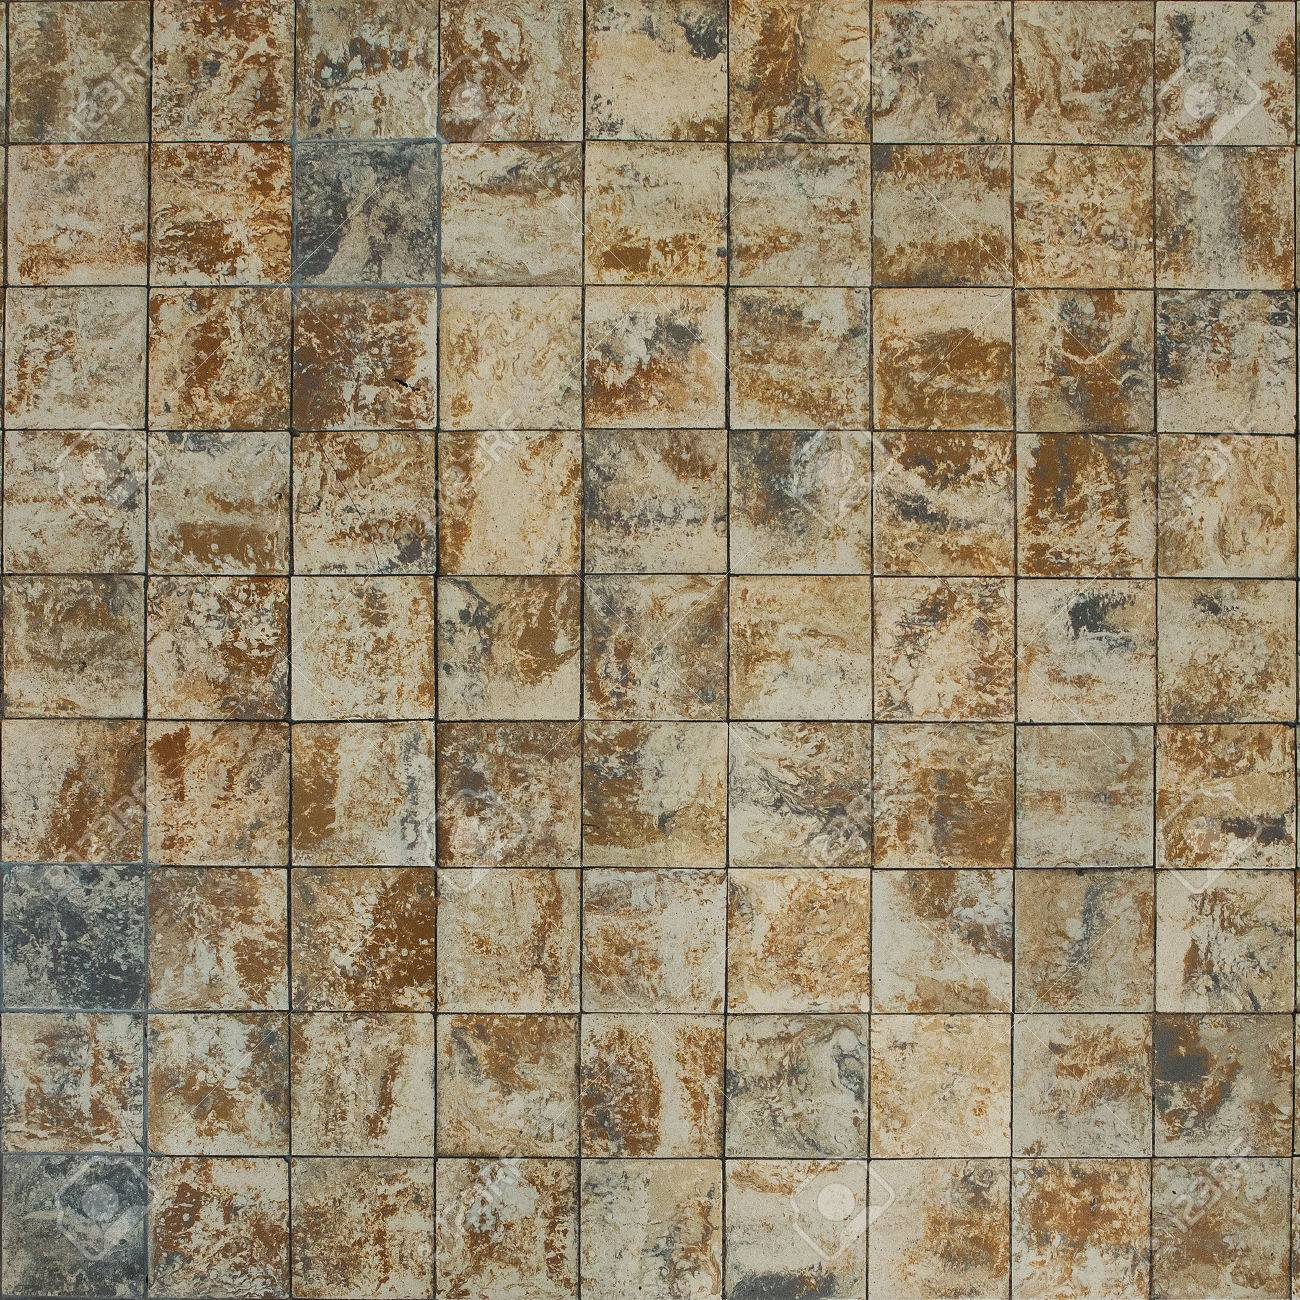 Old Wall Ceramic Tiles Patterns Handcraft From Thailand Parks ...